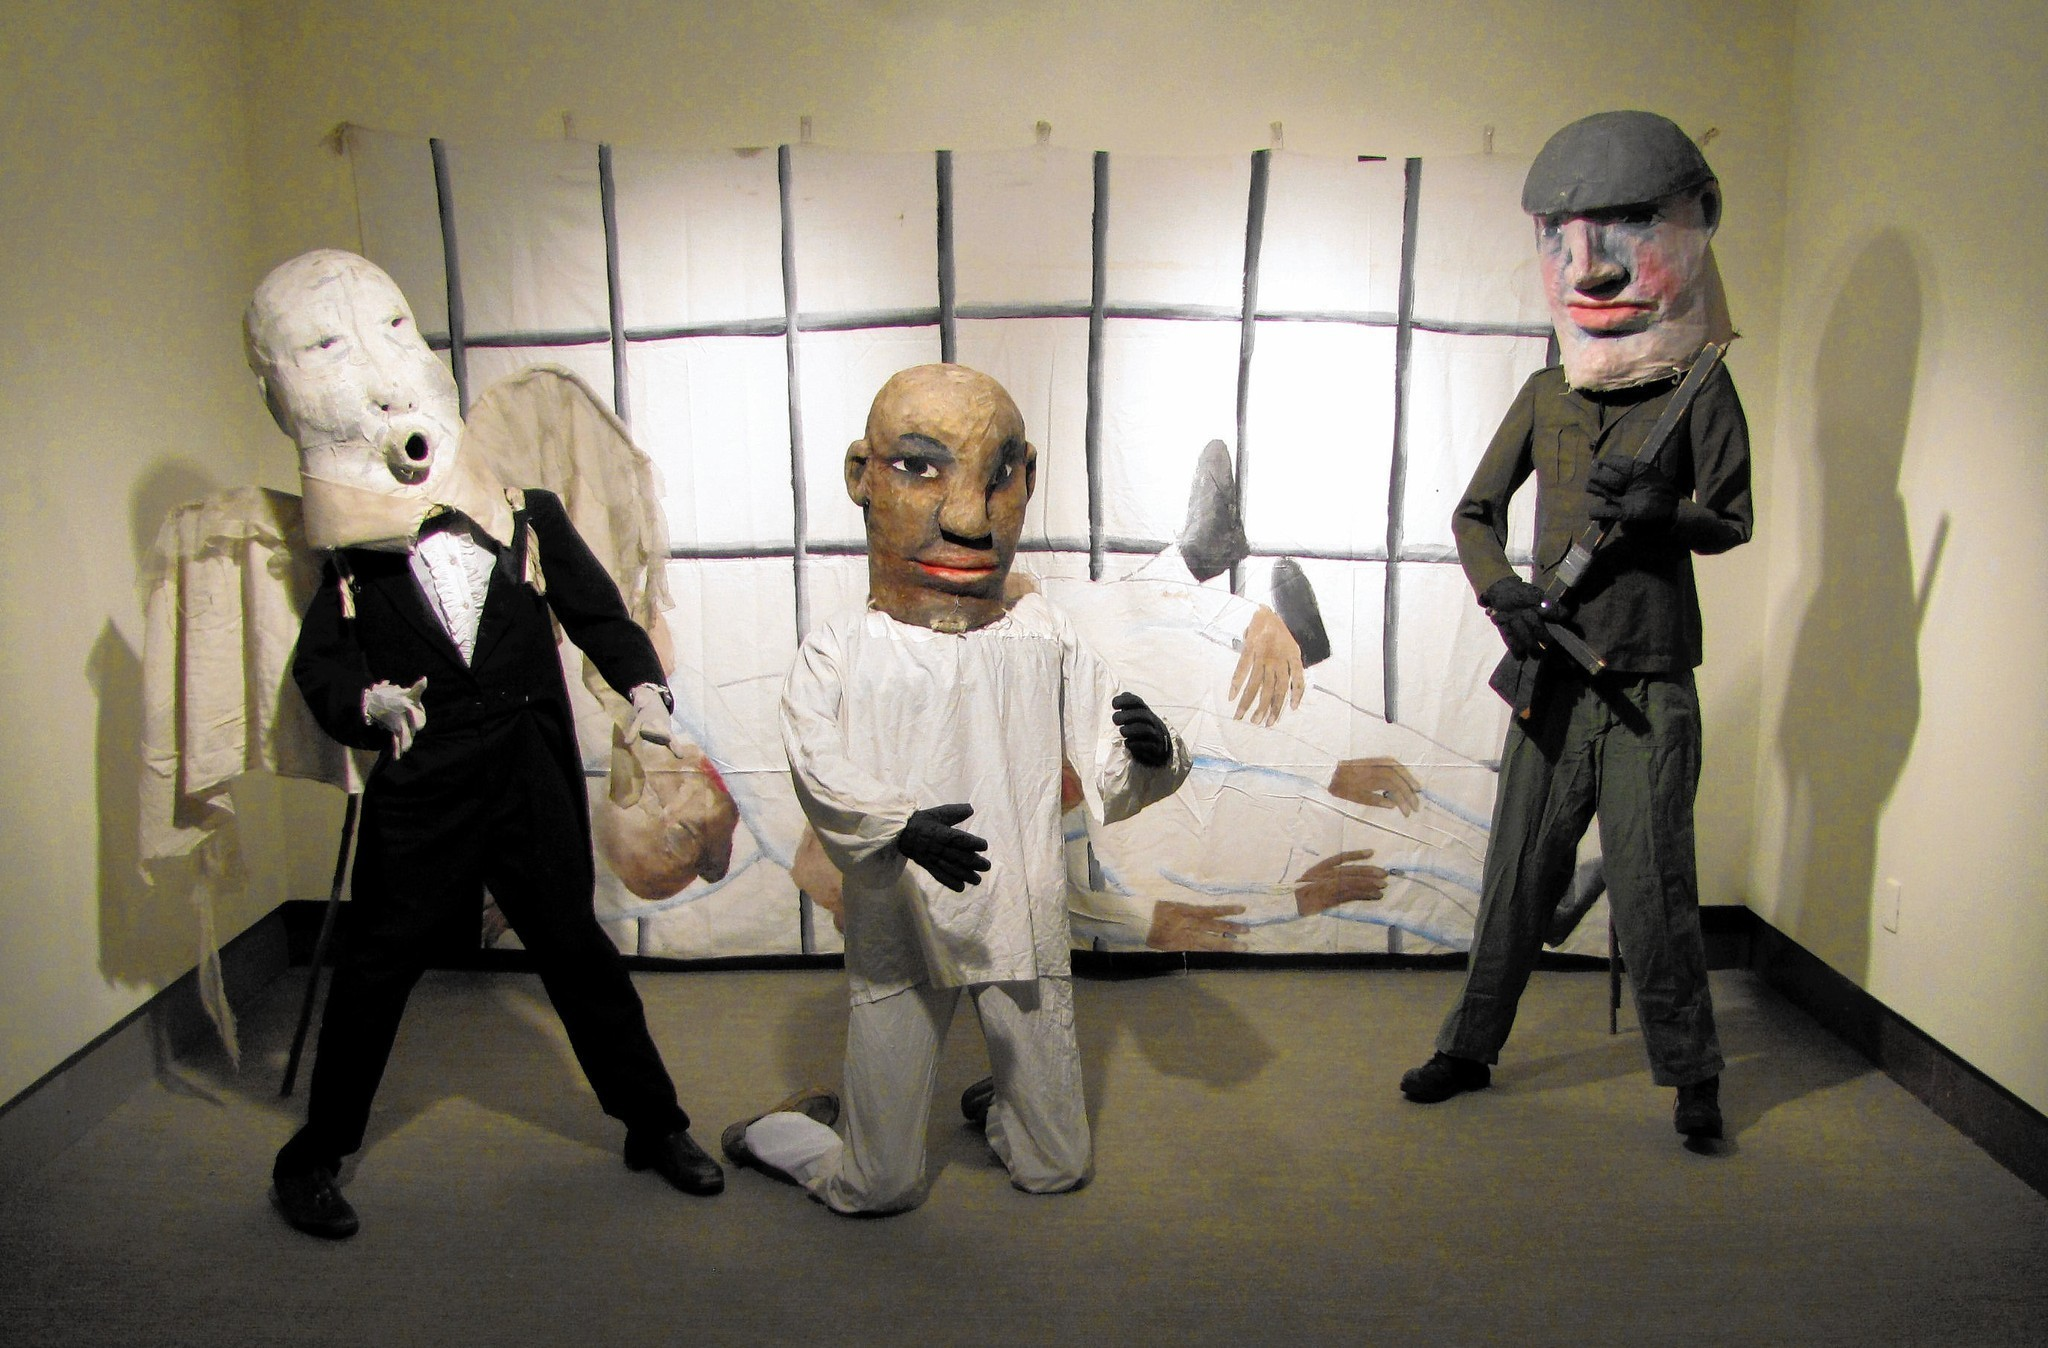 Three Bears Falls The Road to Hana, A Summerlong Celebration Of Puppetry At William Benton - Hartford ...